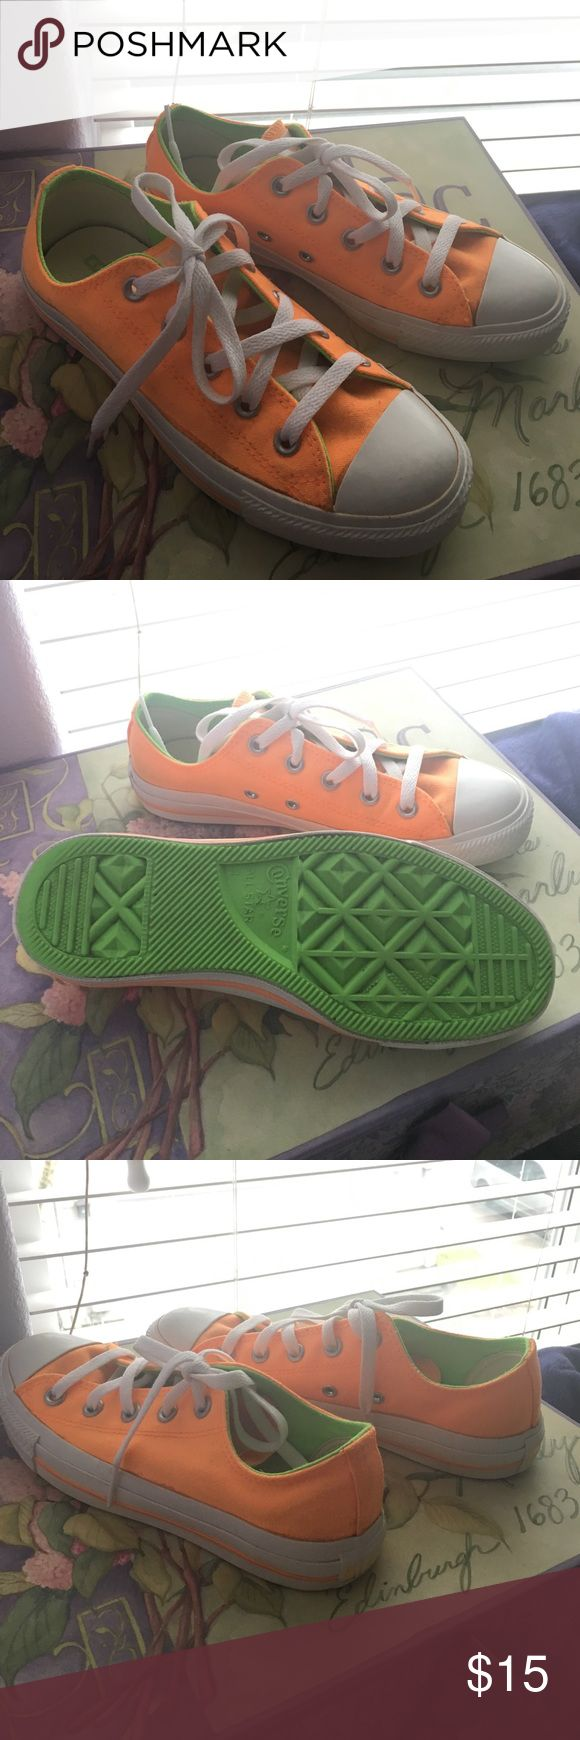 Converse neon orange Neon orange converse. Converse size 4 (6.5 standard size). Been worn few times but in good condition. Converse Shoes Sneakers